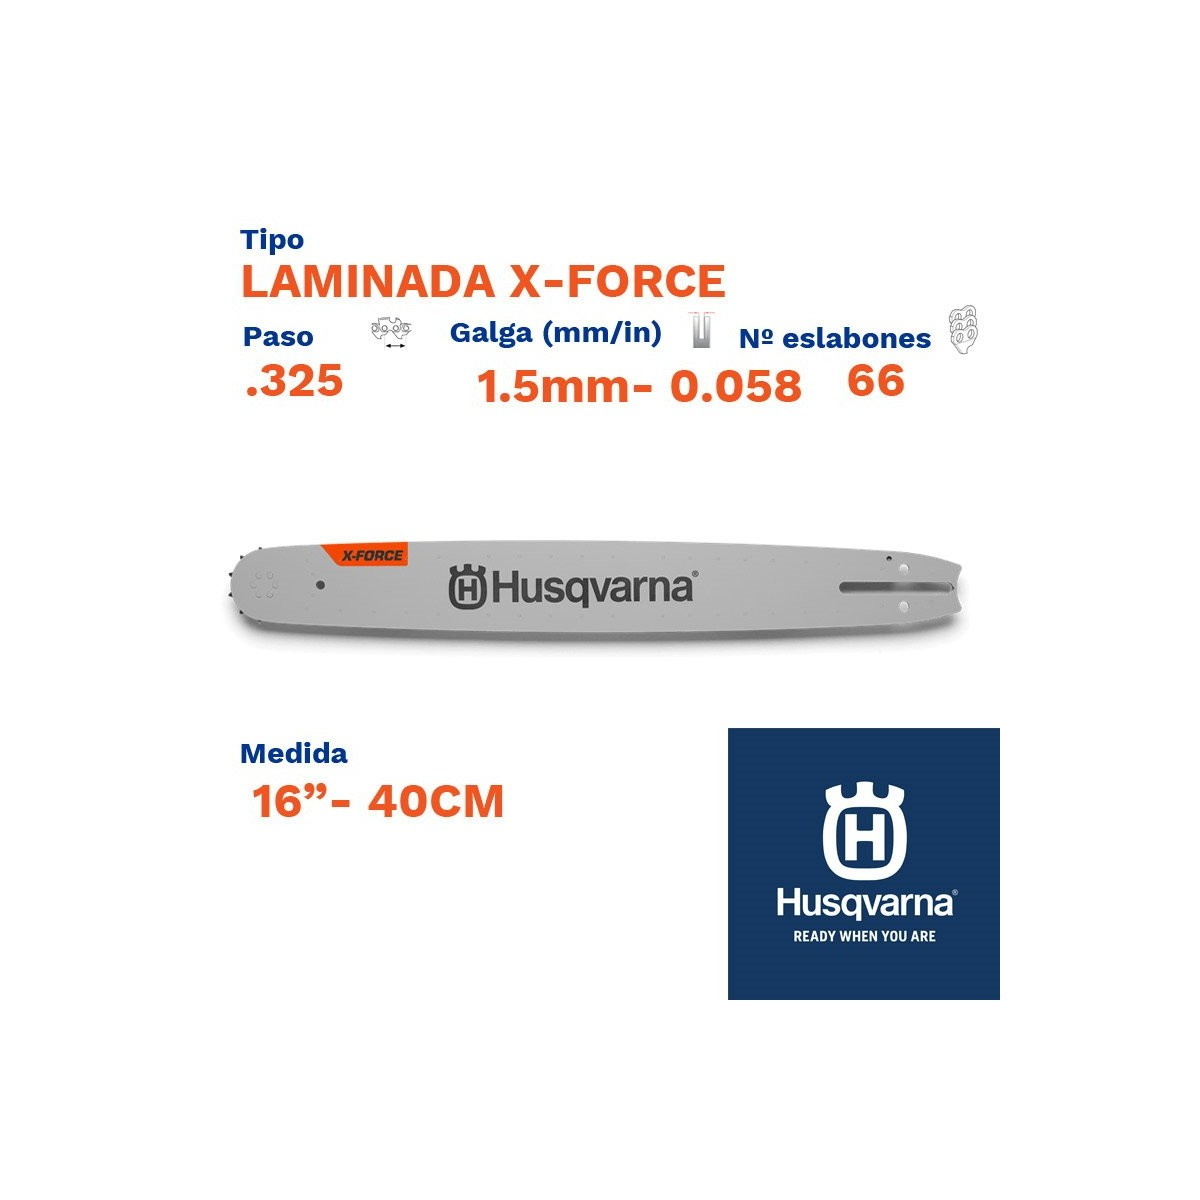 "Husqvarna espada laminada x-force 1.5mm 66 eslabones-pc .325  16""- 40cm"